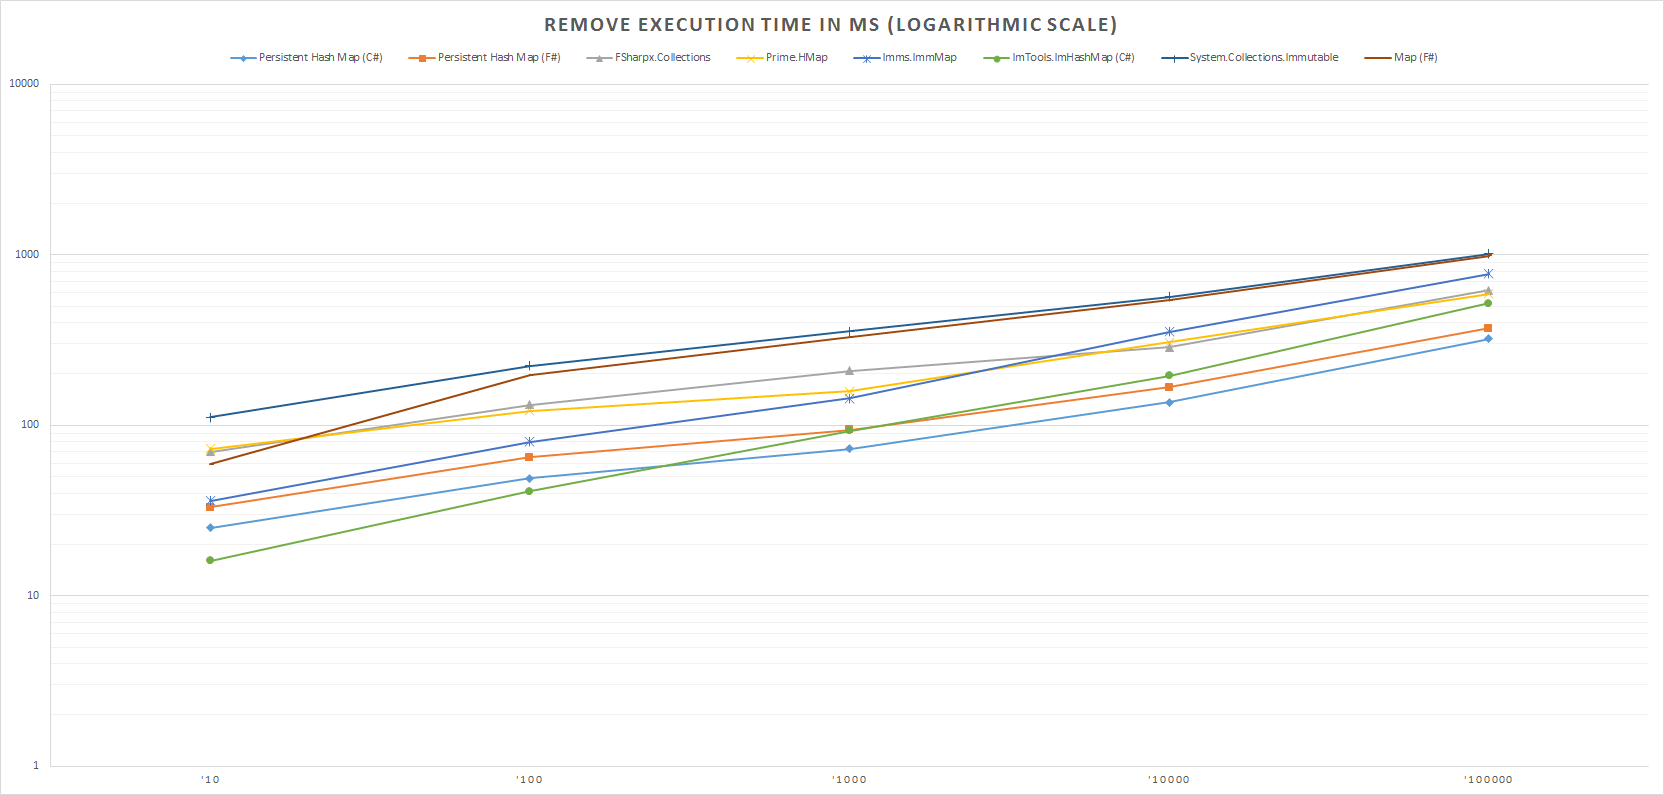 Remove Execution Time In Ms (Logarithmic Scale)